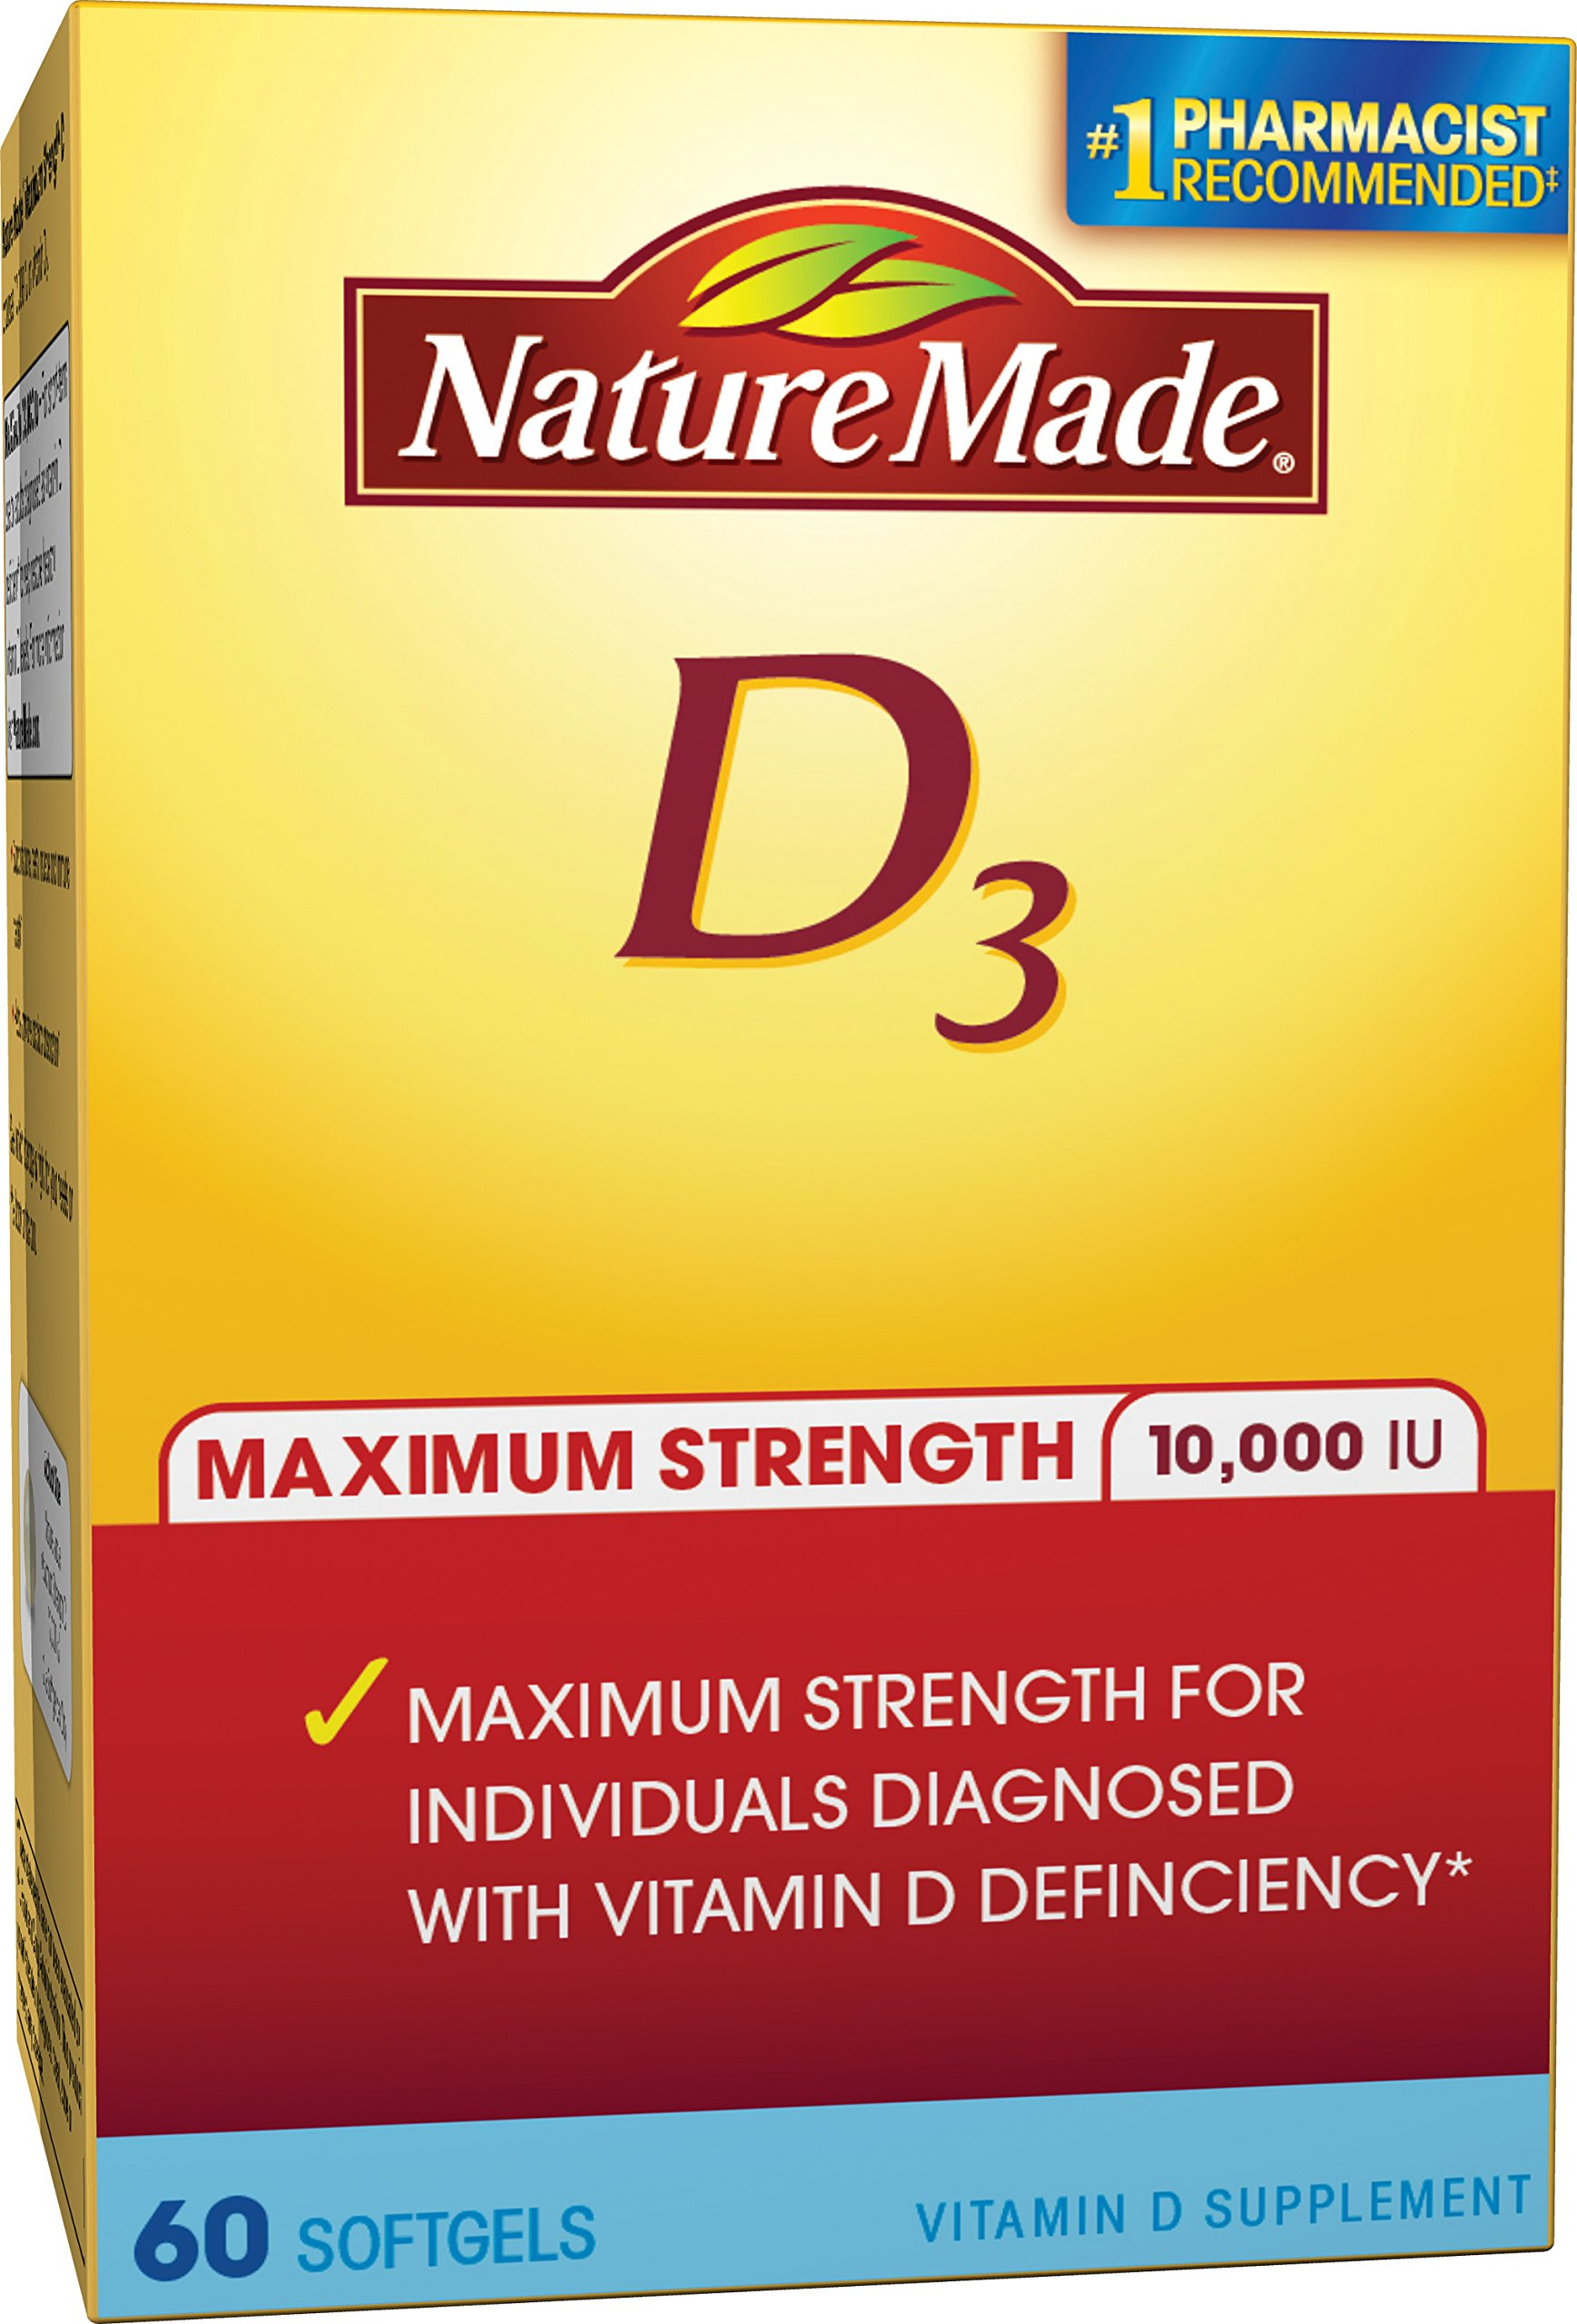 Nature Made Maximum Strength Vitamin D3 10,000 I.U. Soft gel, 60 Count by Nature Made (Image #1)